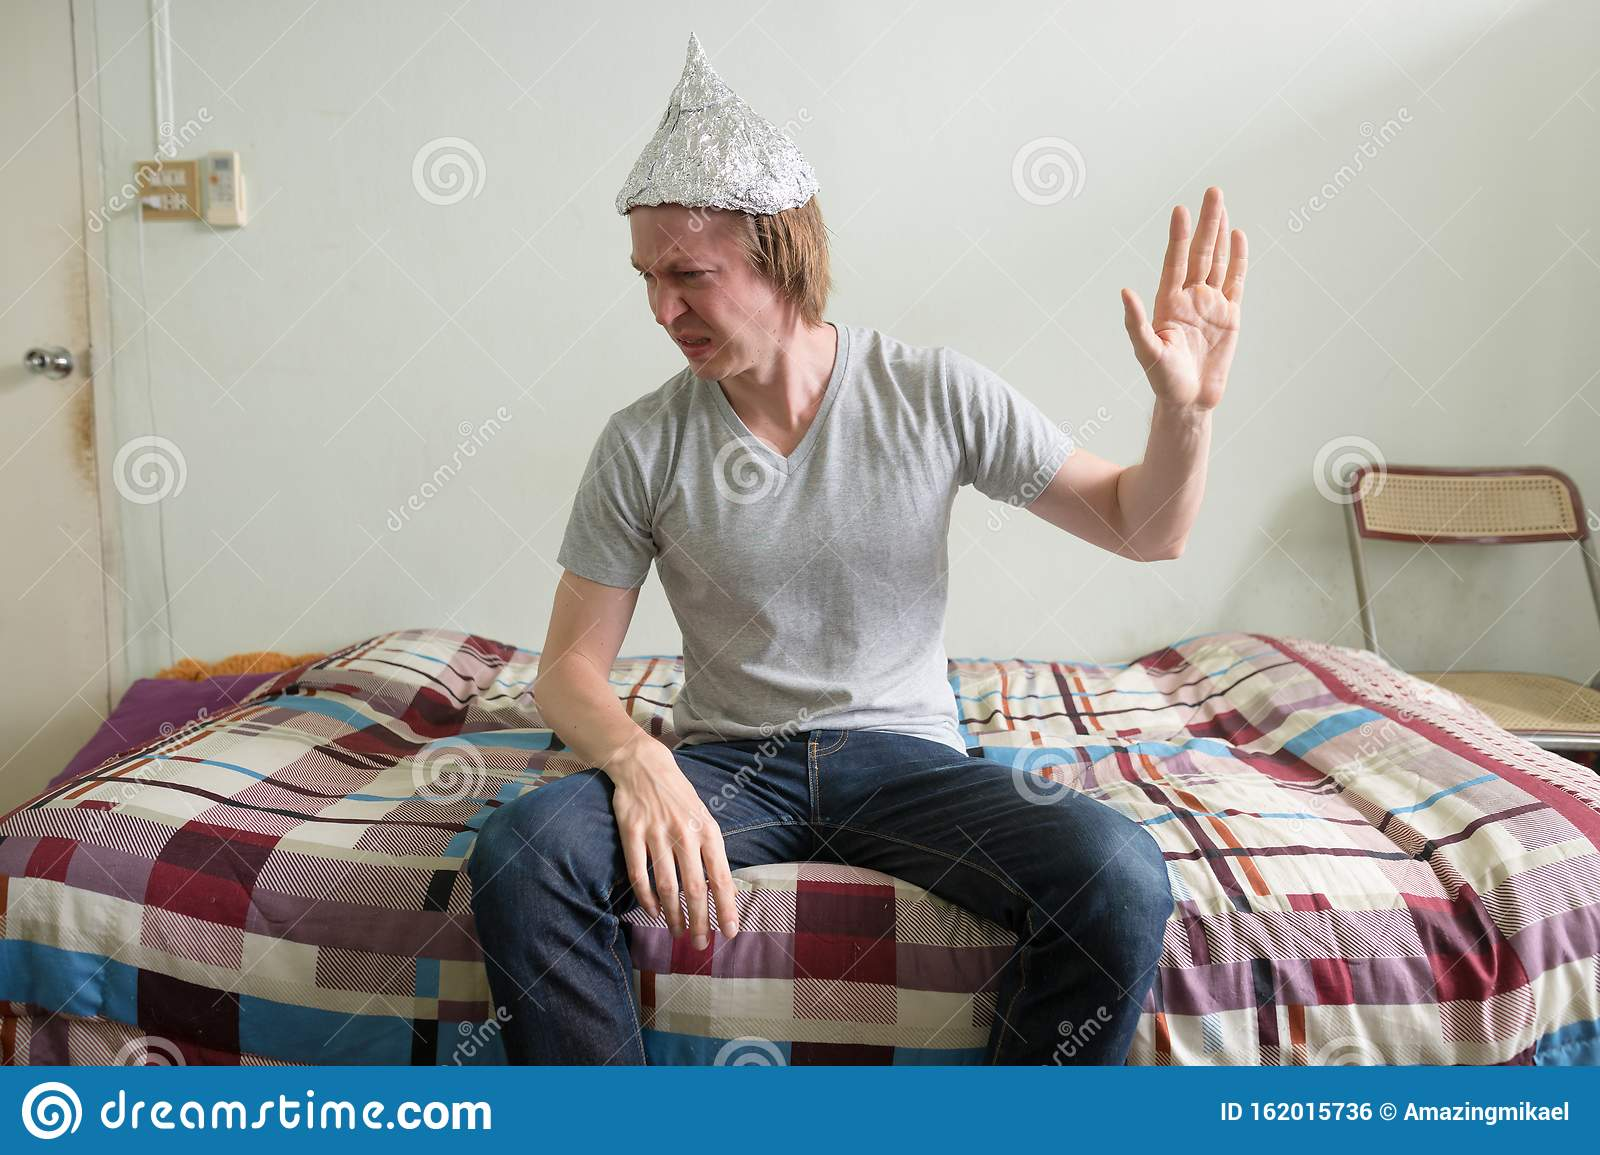 Stressed Young Man With Tin Foil Hat Showing Stop Gesture In The Bedroom Stock Photo Image Of Adult Horror 162015736